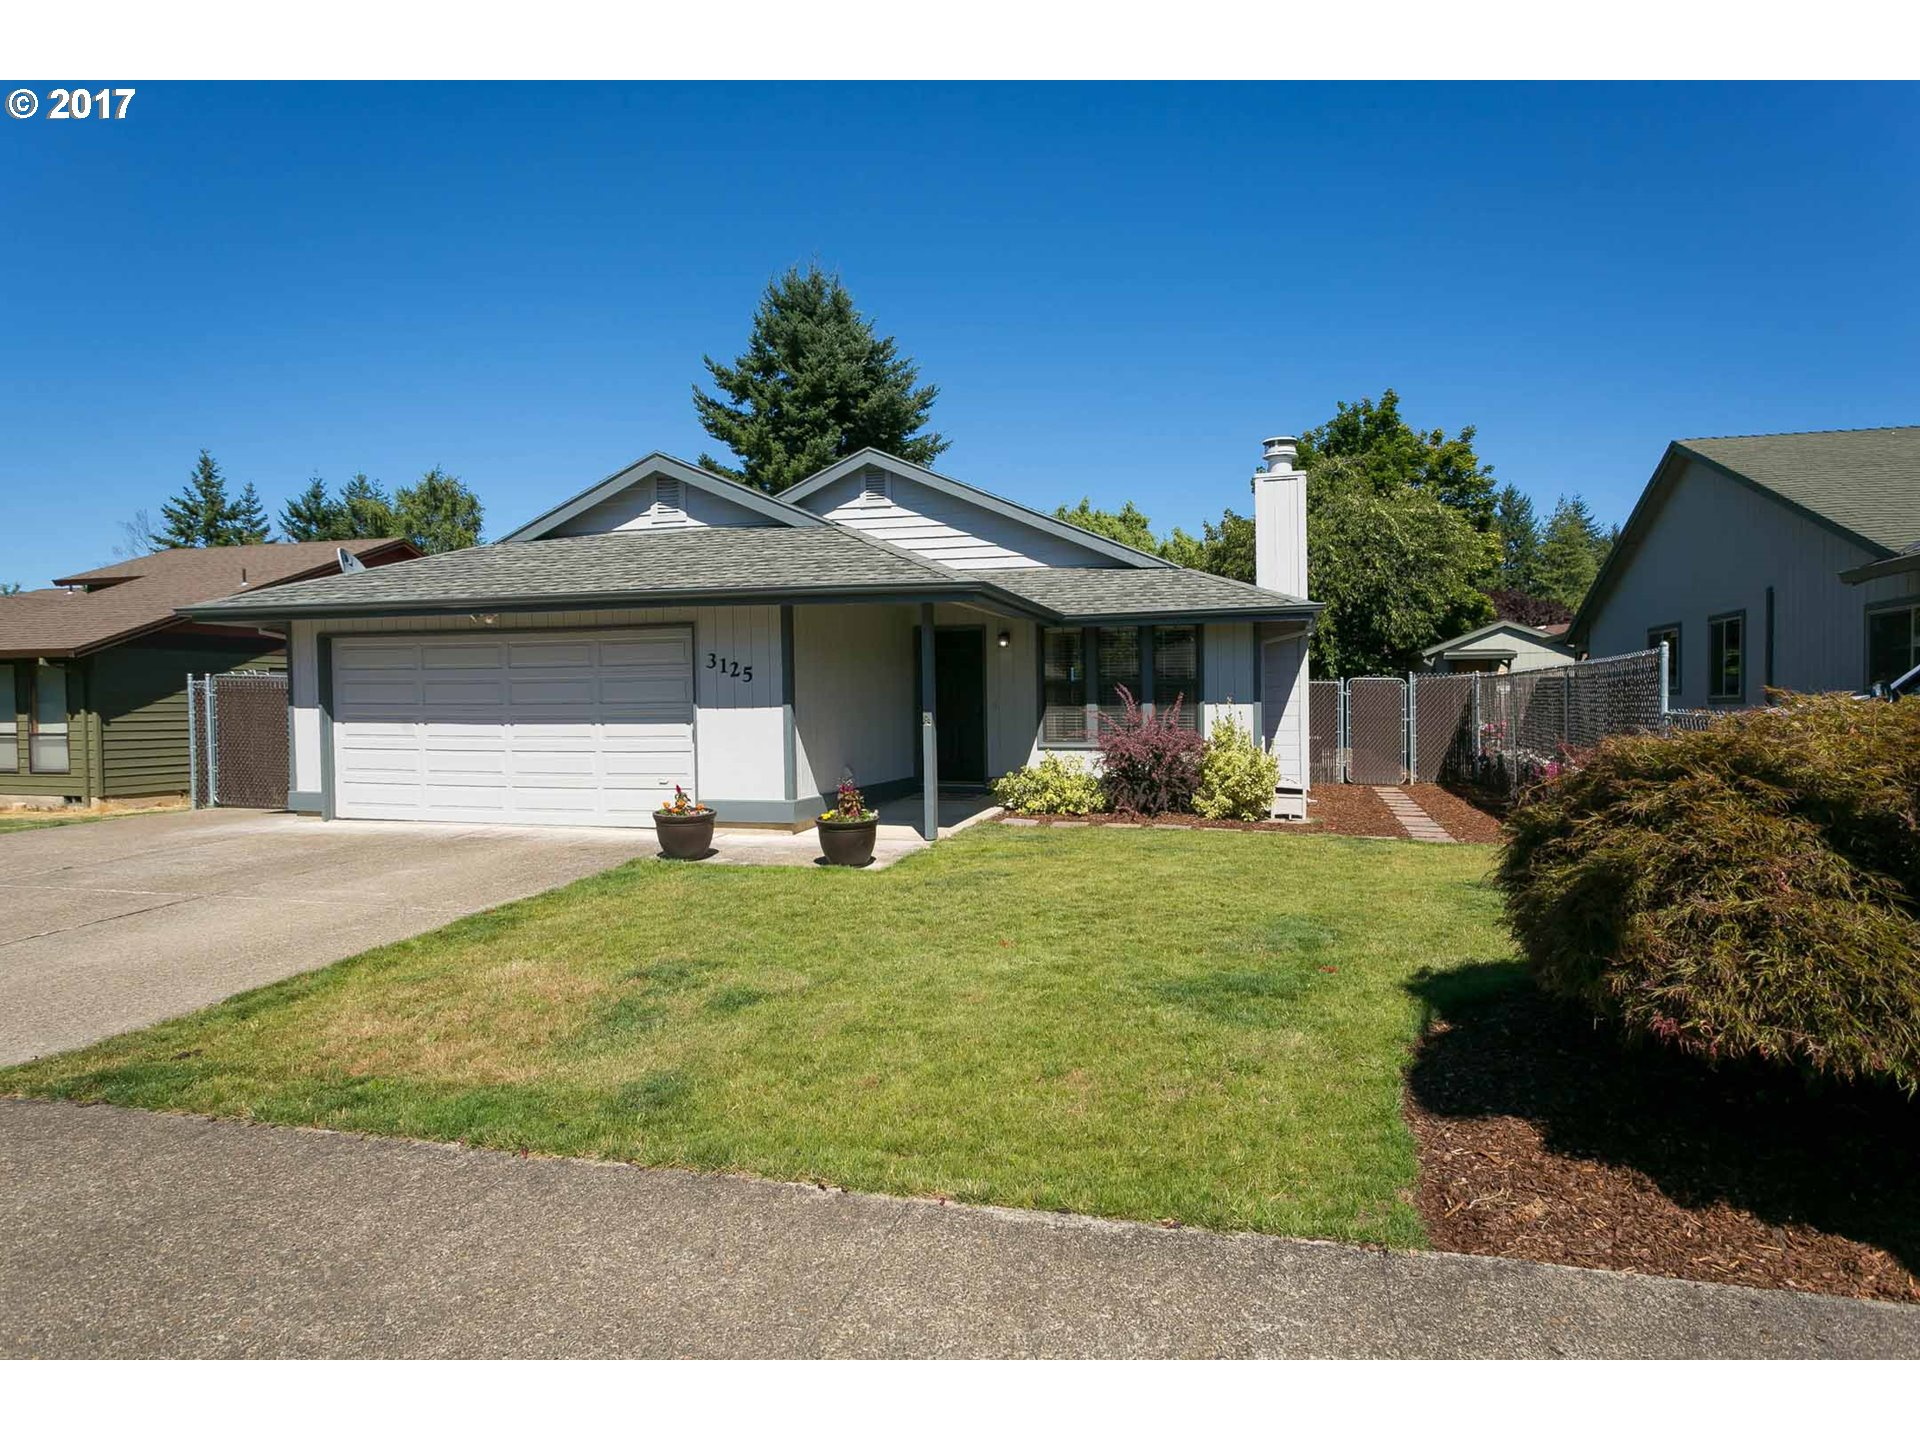 3125 B ST, Forest Grove, OR 97116